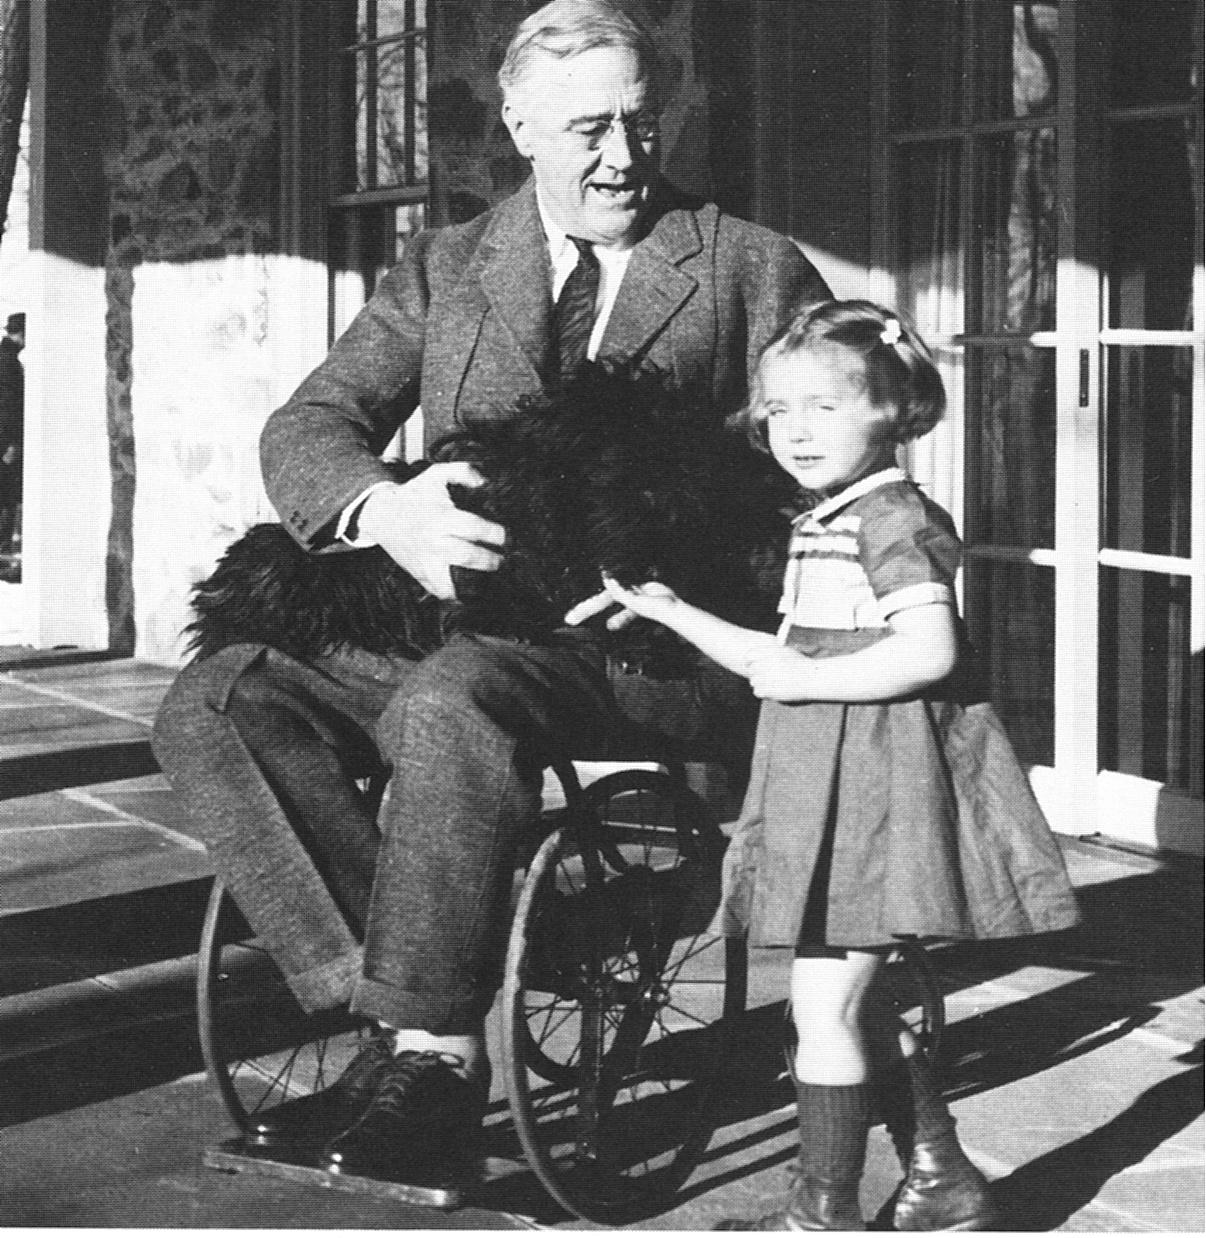 Franklin D. Roosevelt fell victim to polio in 1921, then more commonly known as infantile paralysis, despite many adult cases. Roosevelt was a U.S. Senator at the time and was vacationing near the border of Maine and New Brunswick when he fell ill. Polio left him dependent on crutches and a wheelchair, although he would serve three terms as U.S. President.